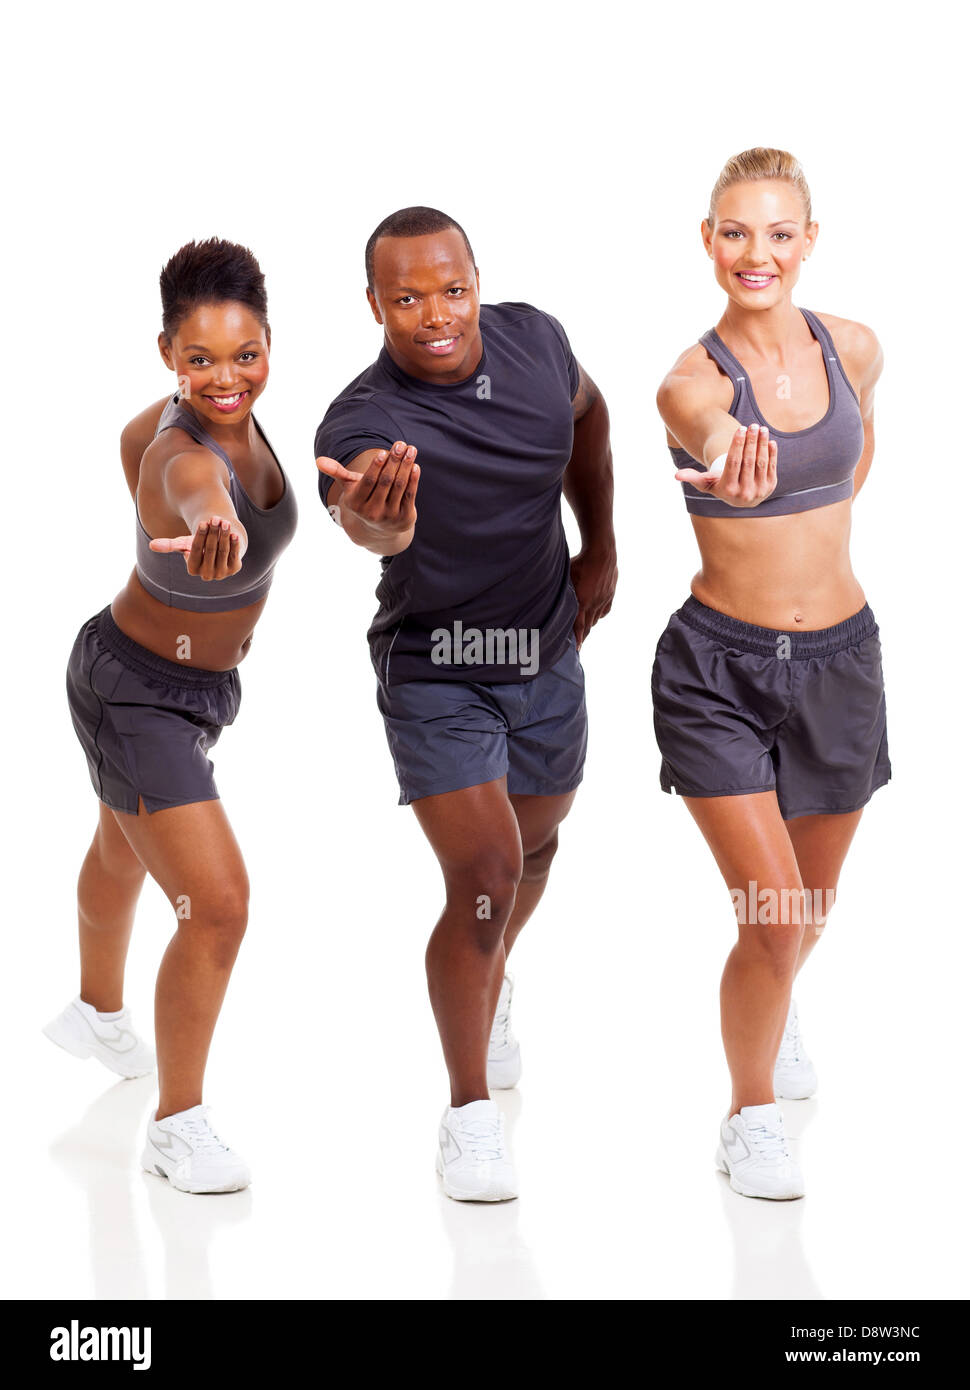 cheerful group fit people inviting to join exercise on white background - Stock Image